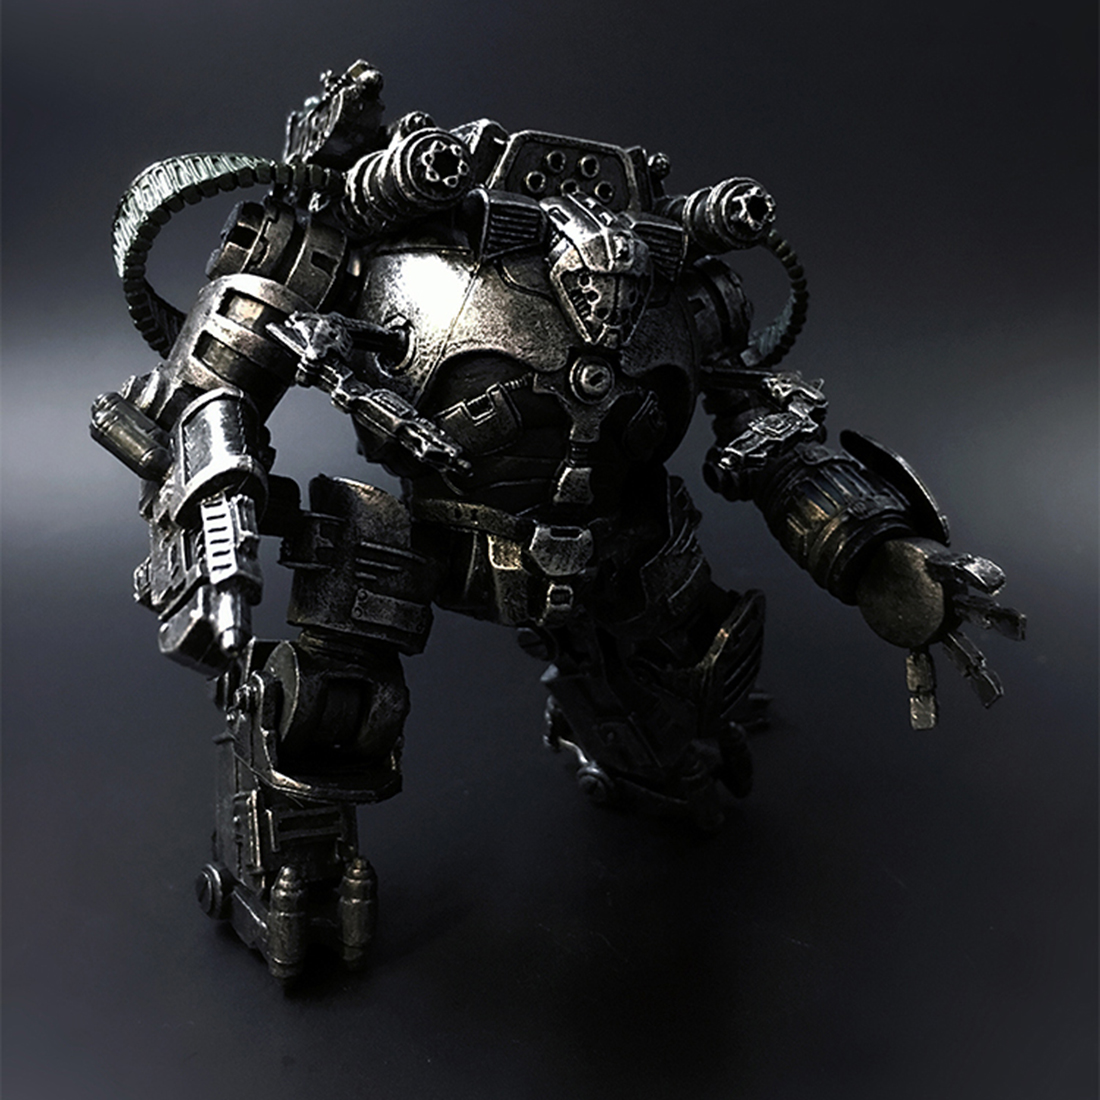 10.5cm Attack Mech Model Destroyer 3D Stitching Movable Soldier Model DIY Stem Toy With High Degree Of Reduction